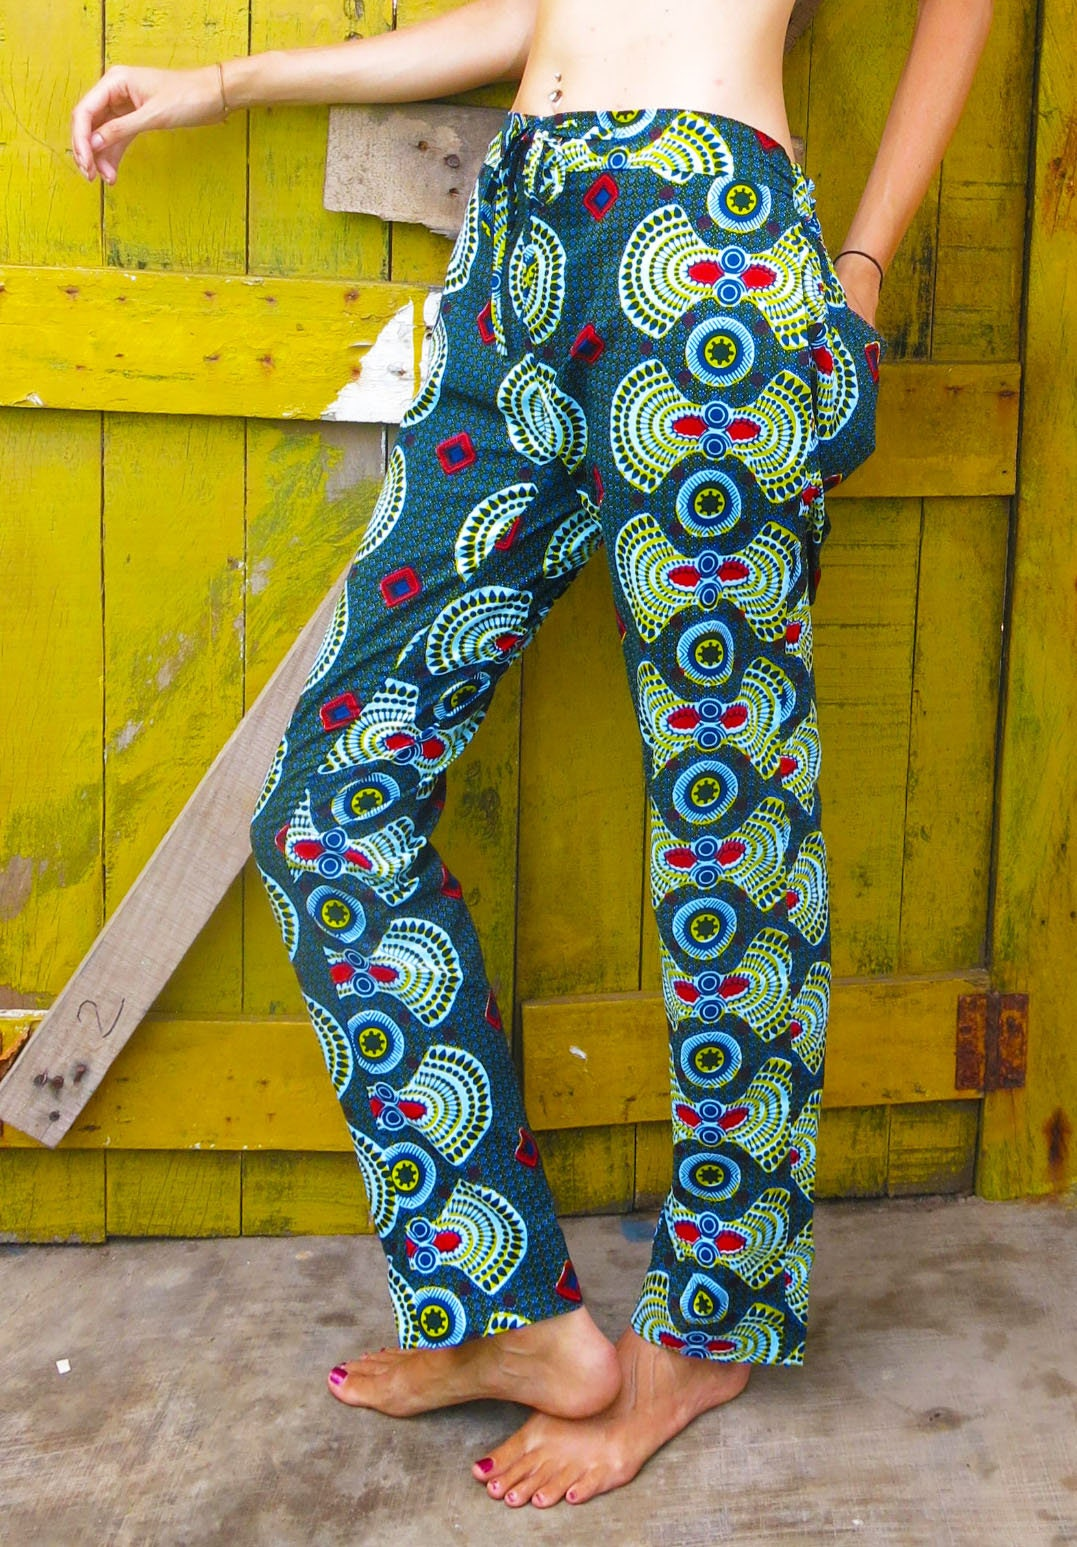 Paa Pa Bi Original Pants  African print pants  Unisex pants  Festival trousers  African two piece  Lounge pants Ethical clothing